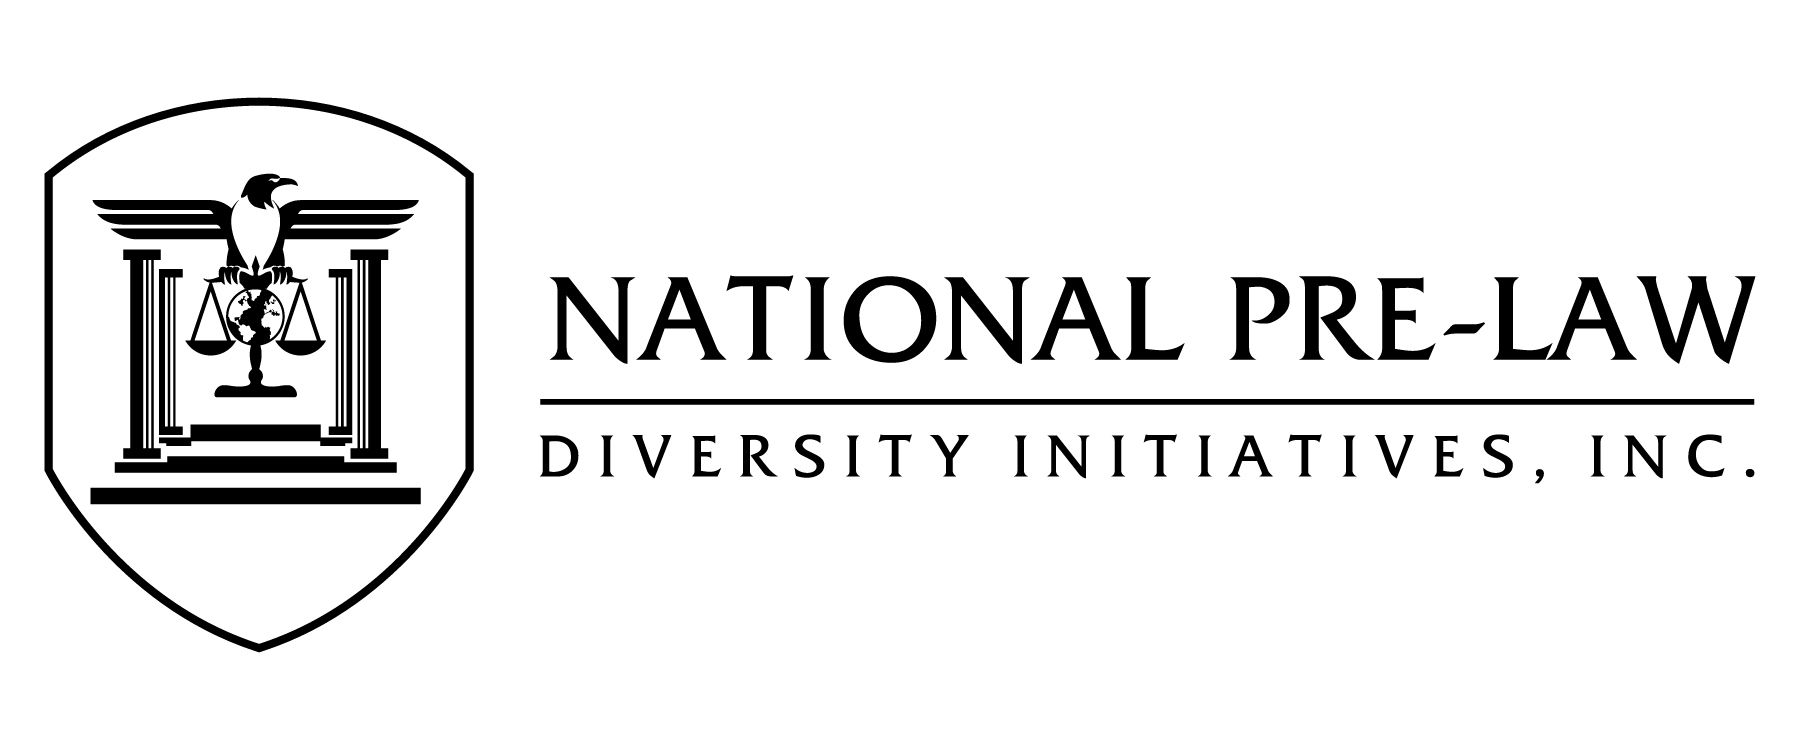 National Pre-Law Diversity Initiatives, Inc. Logo